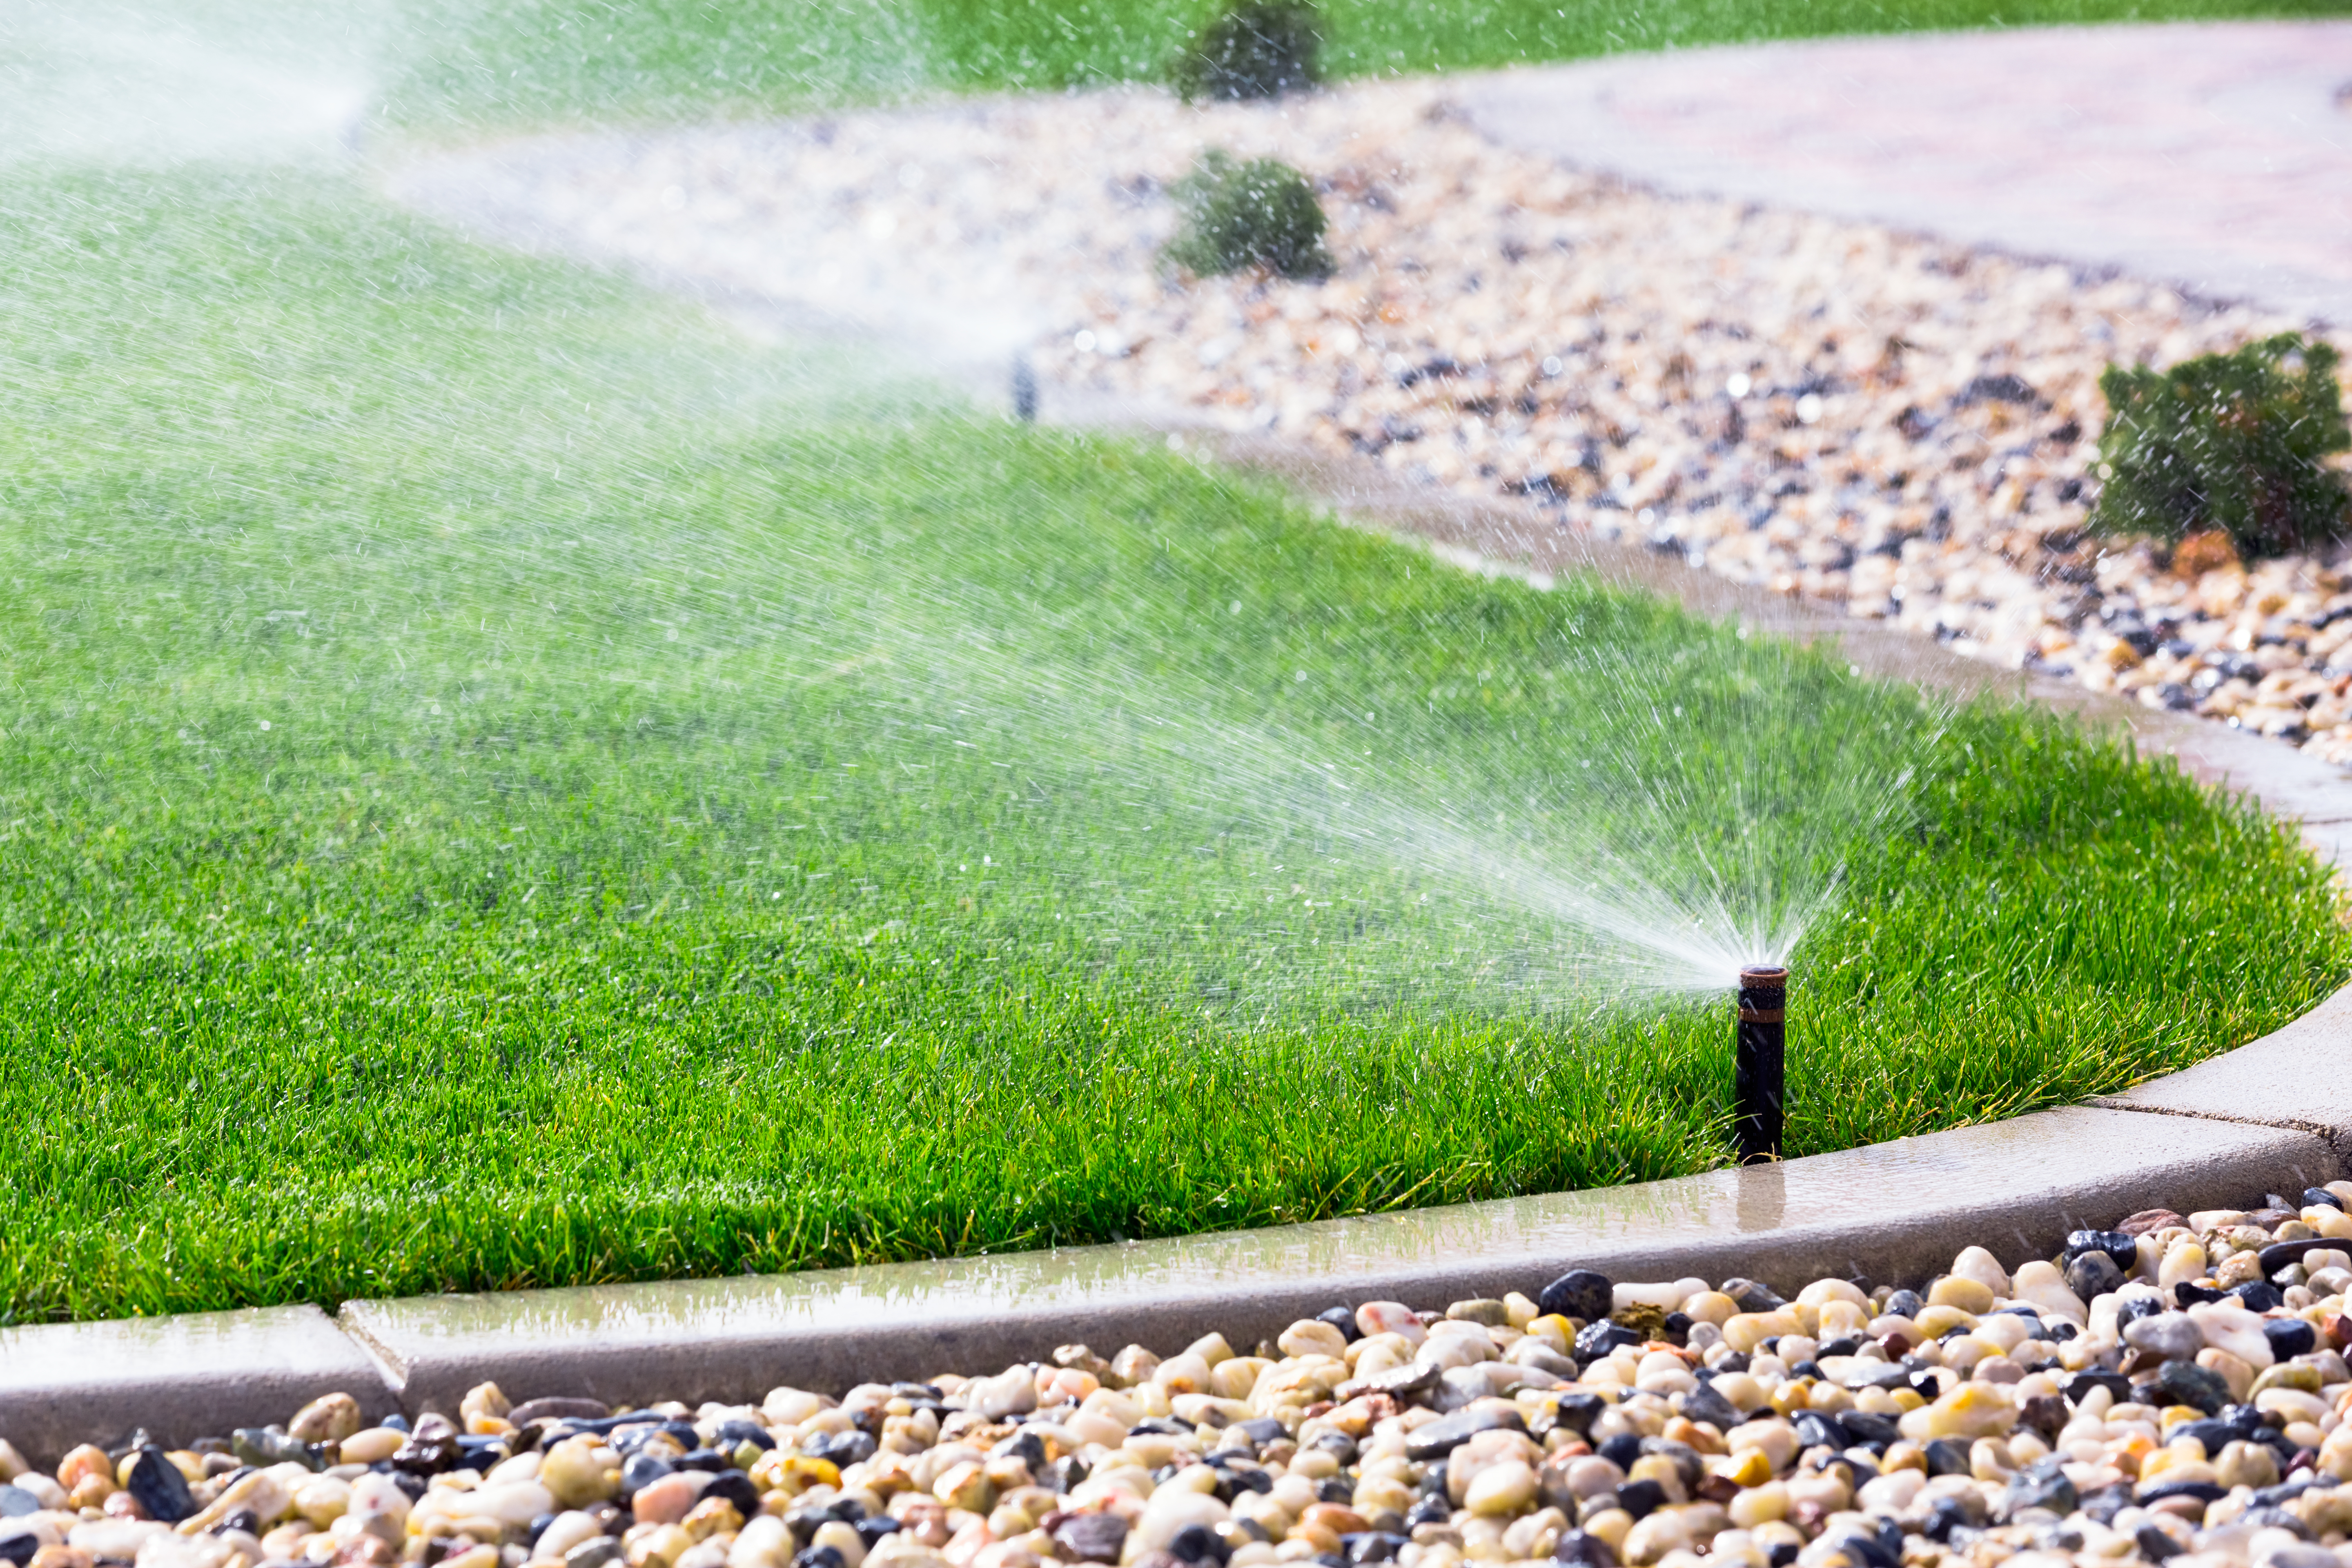 How much should you water your lawn?